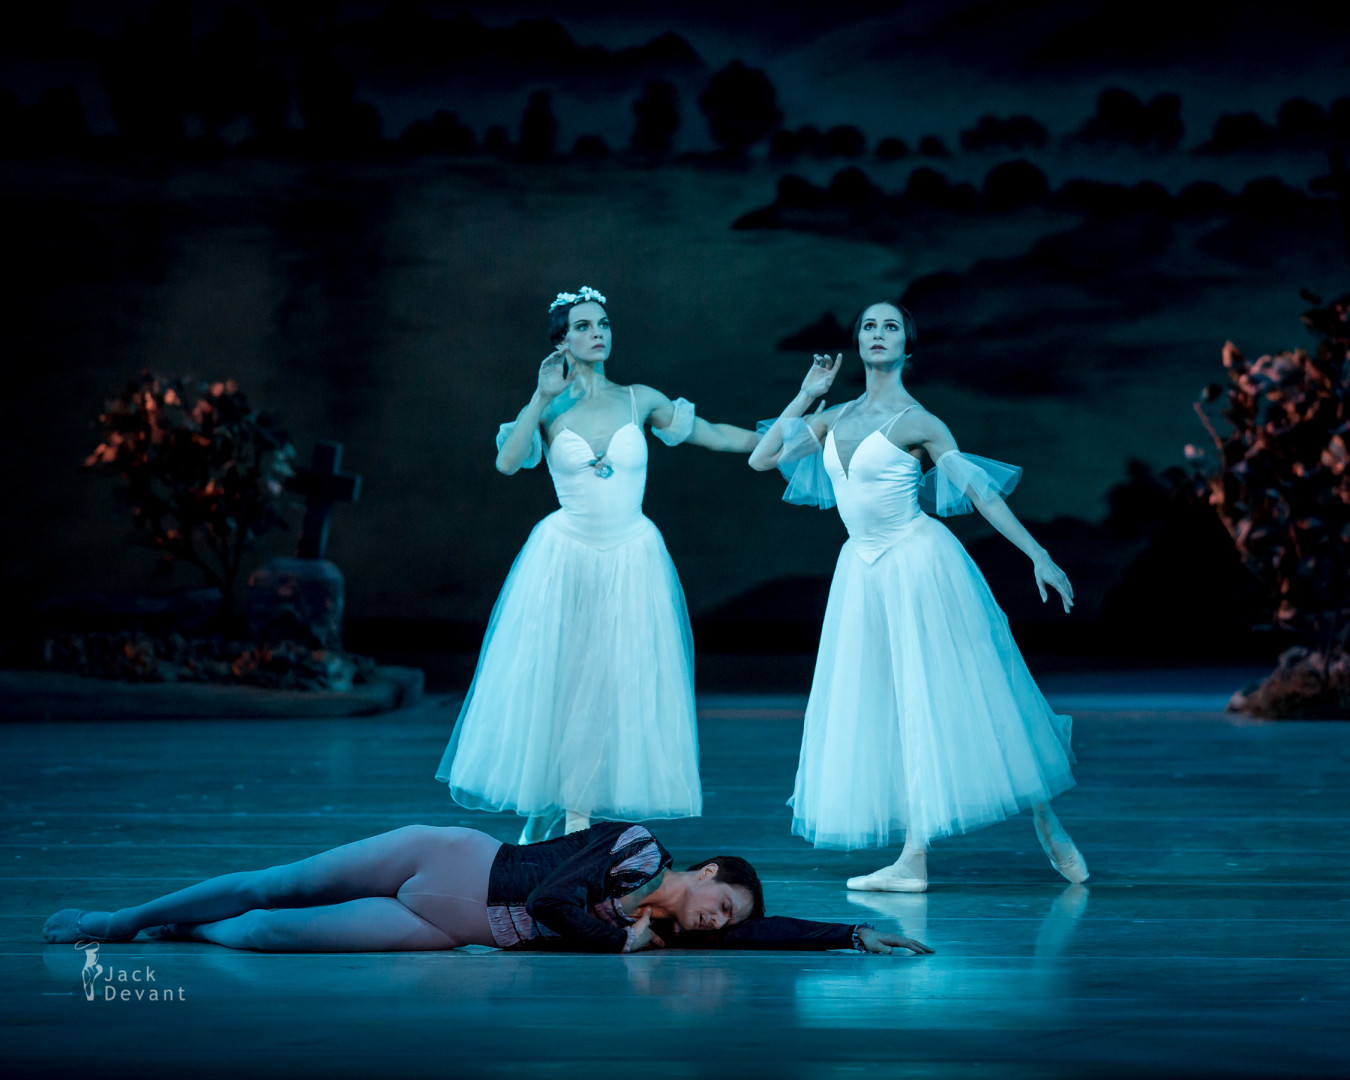 Oxana Skorik and Yevgeny Ivanchenko in Giselle II act